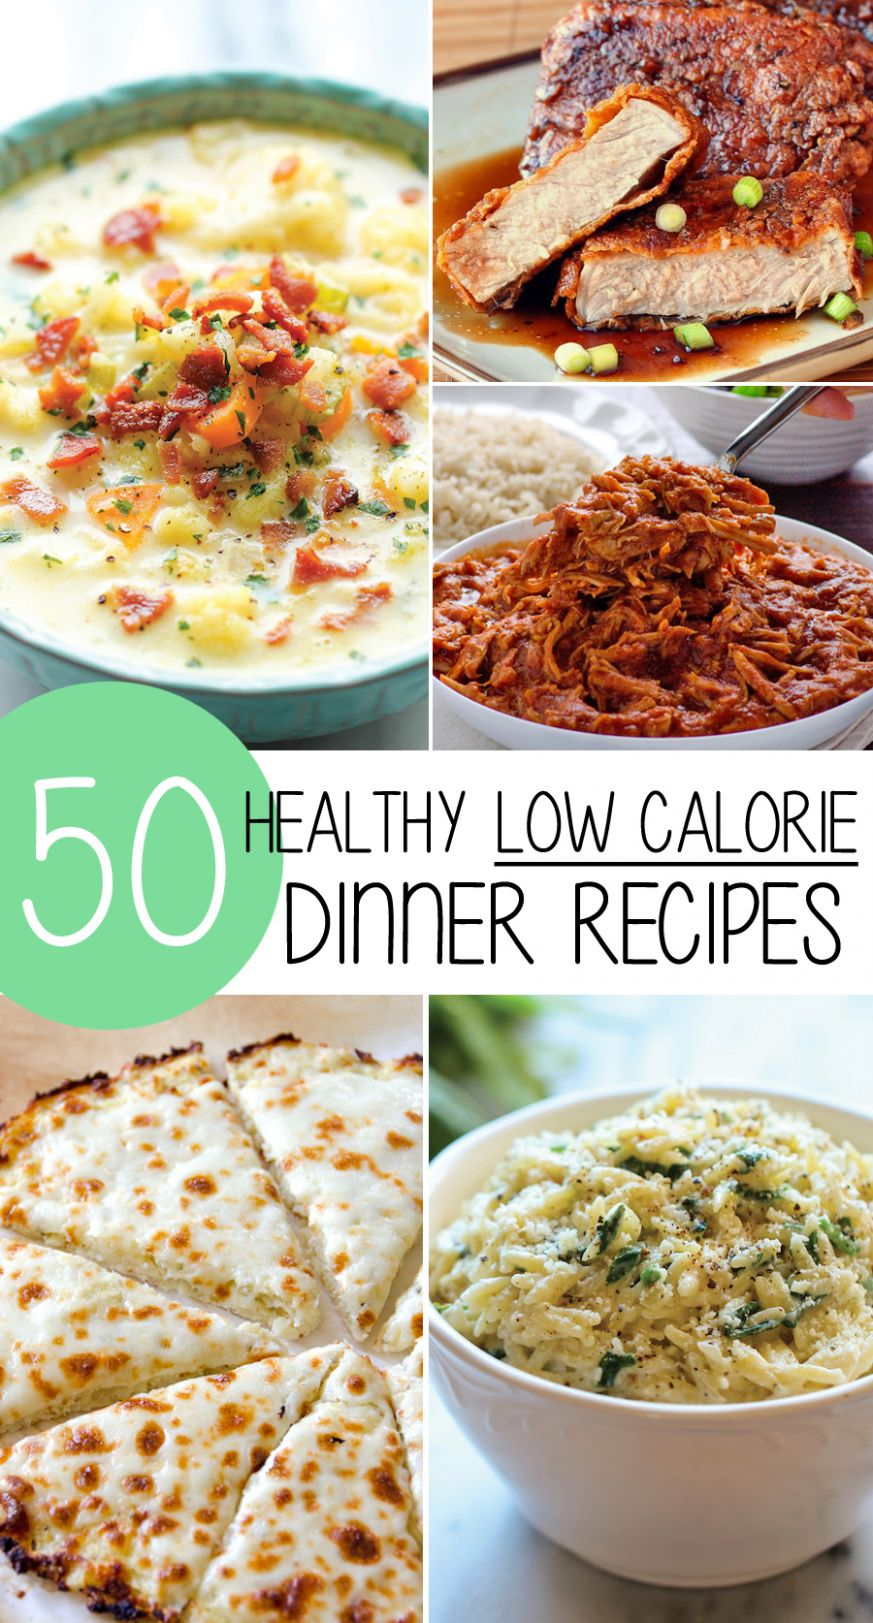 11 Healthy Low Calorie Weight Loss Dinner Recipes! – TrimmedandToned - Easy Recipes Low Calorie